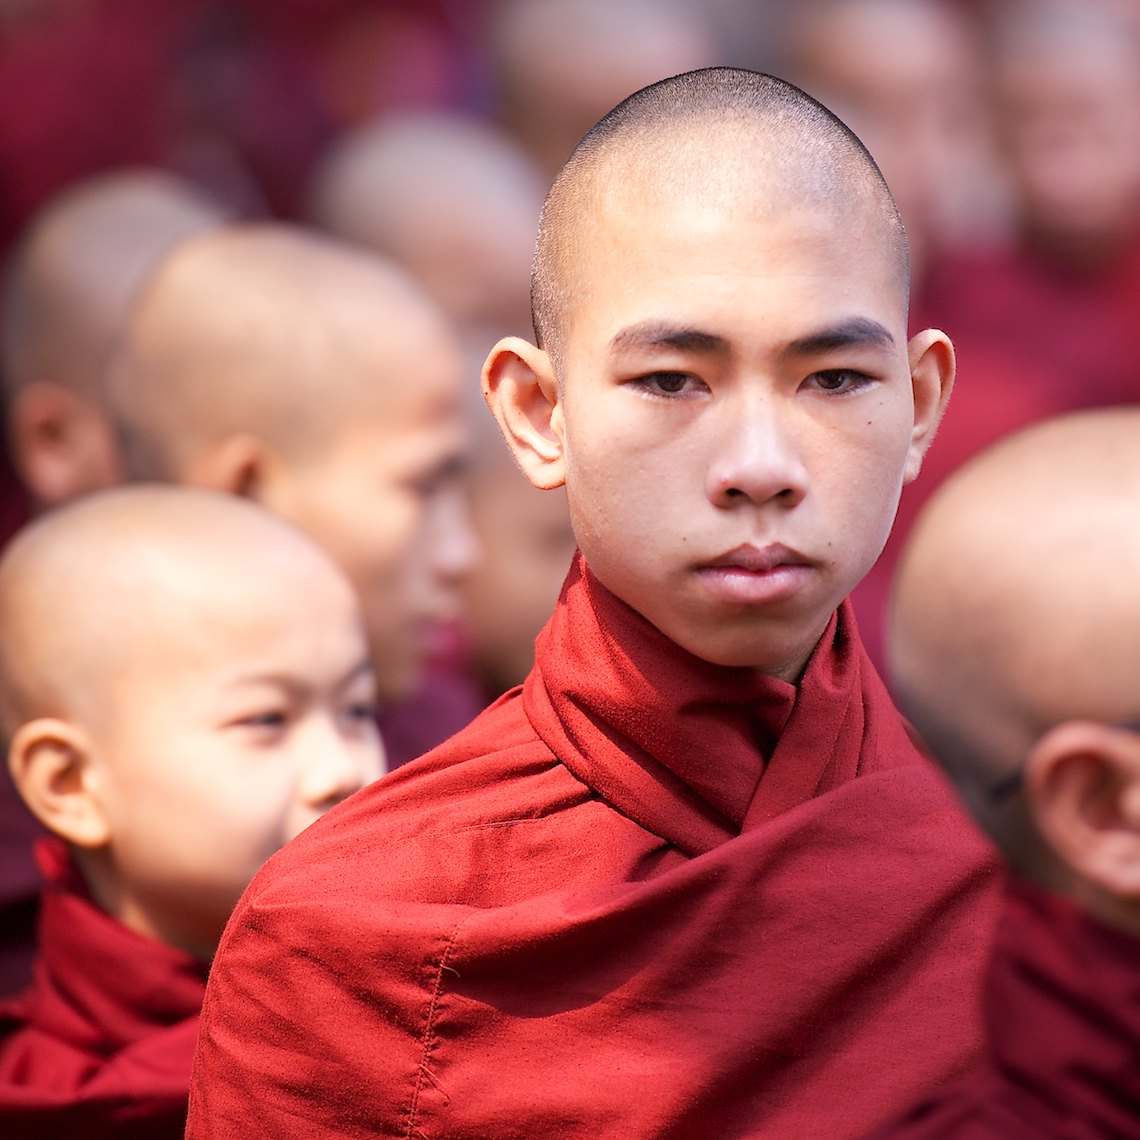 Burma Mandalay monk portrait